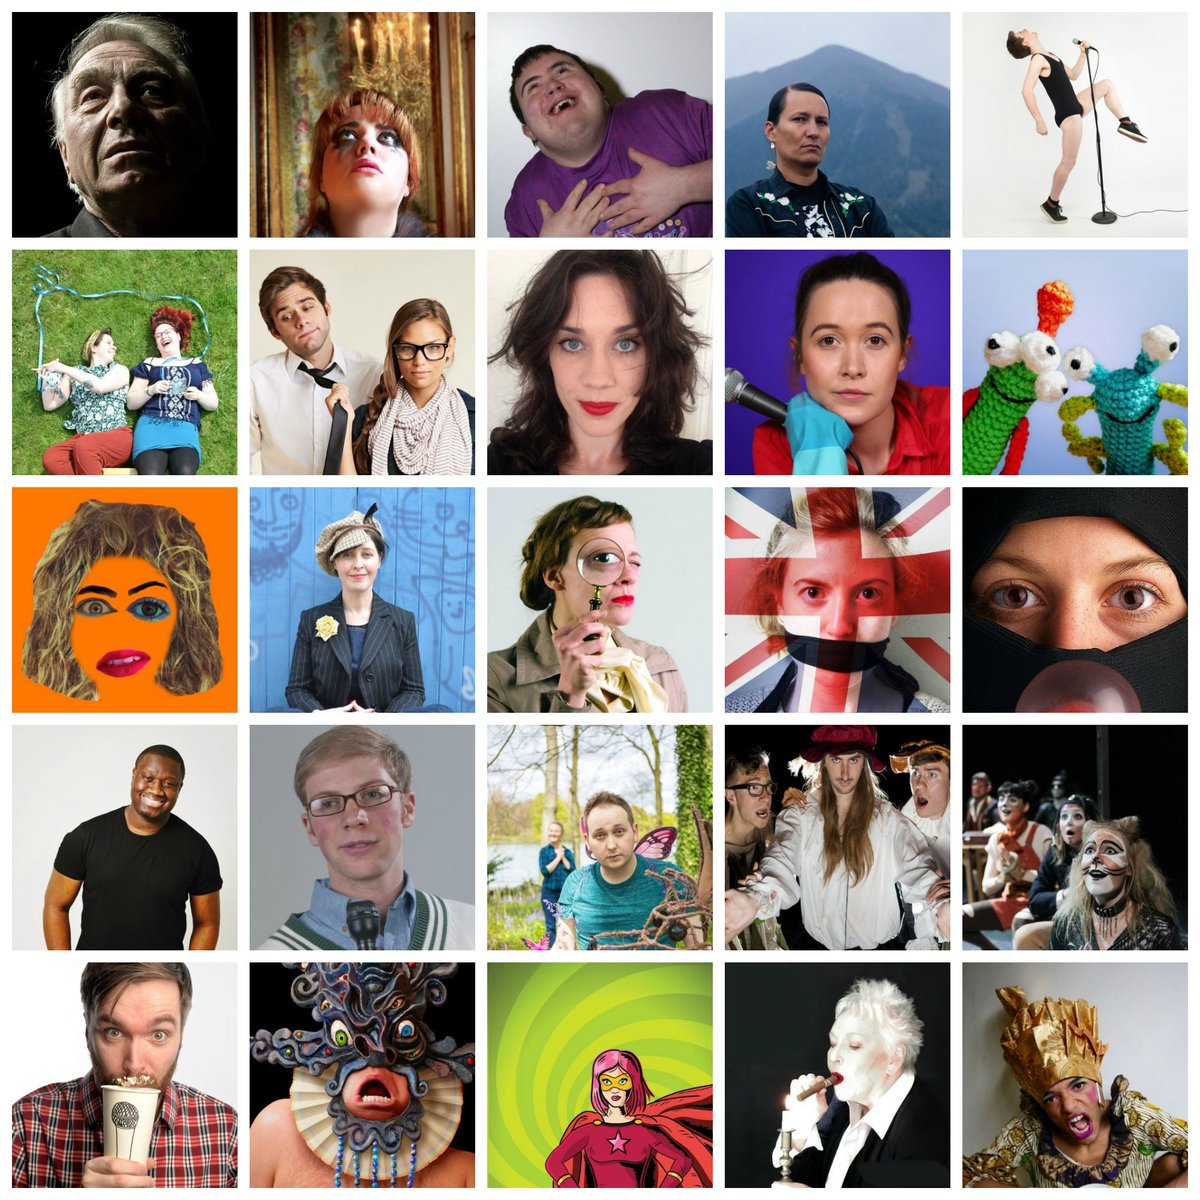 The full programme of events for the 11th Camden Fringe is now available to view at https://t.co/EiTwhCjYpJ. https://t.co/rqPJ2wO89x